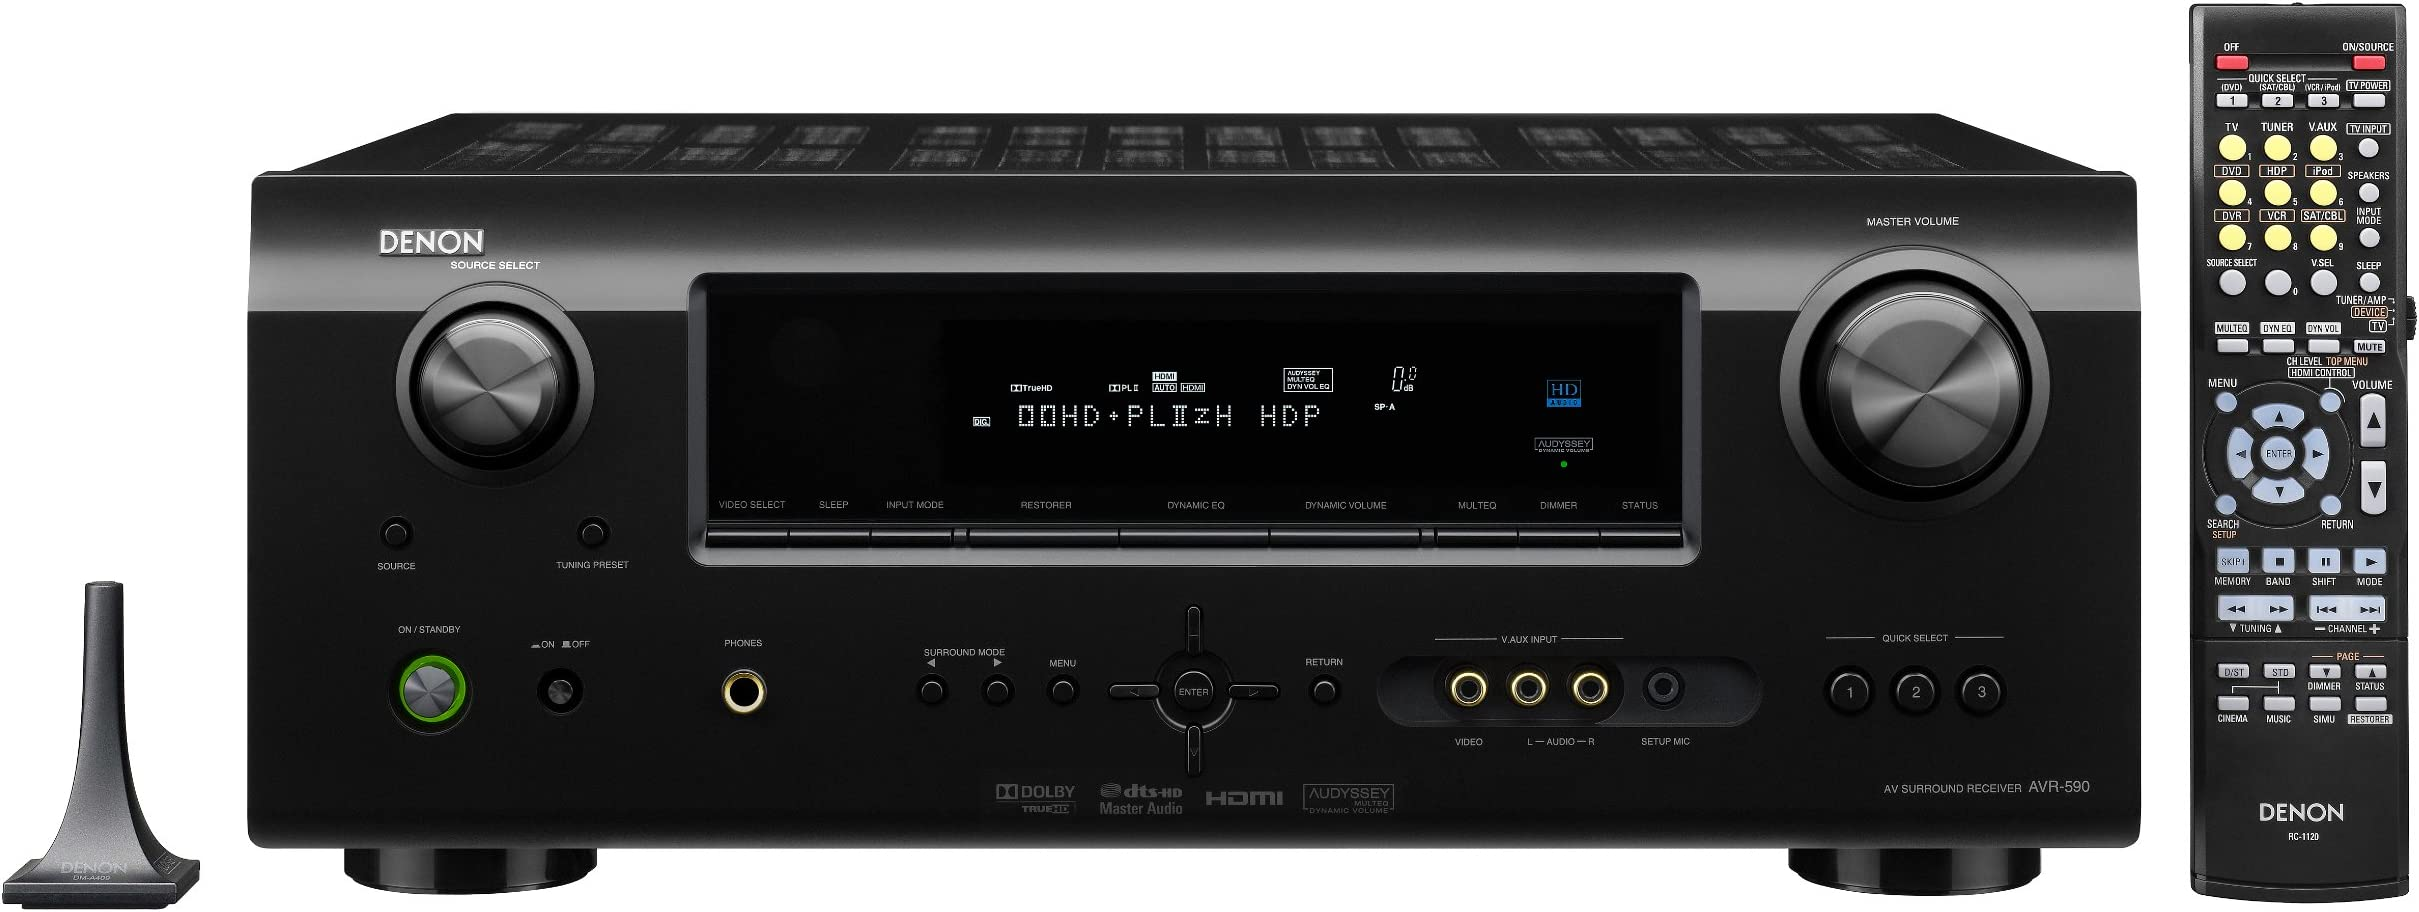 Denon AVR-391 5.1 Channel AV Home Theater Receiver with HDMI 1.4a Black Discontinued by Manufacturer